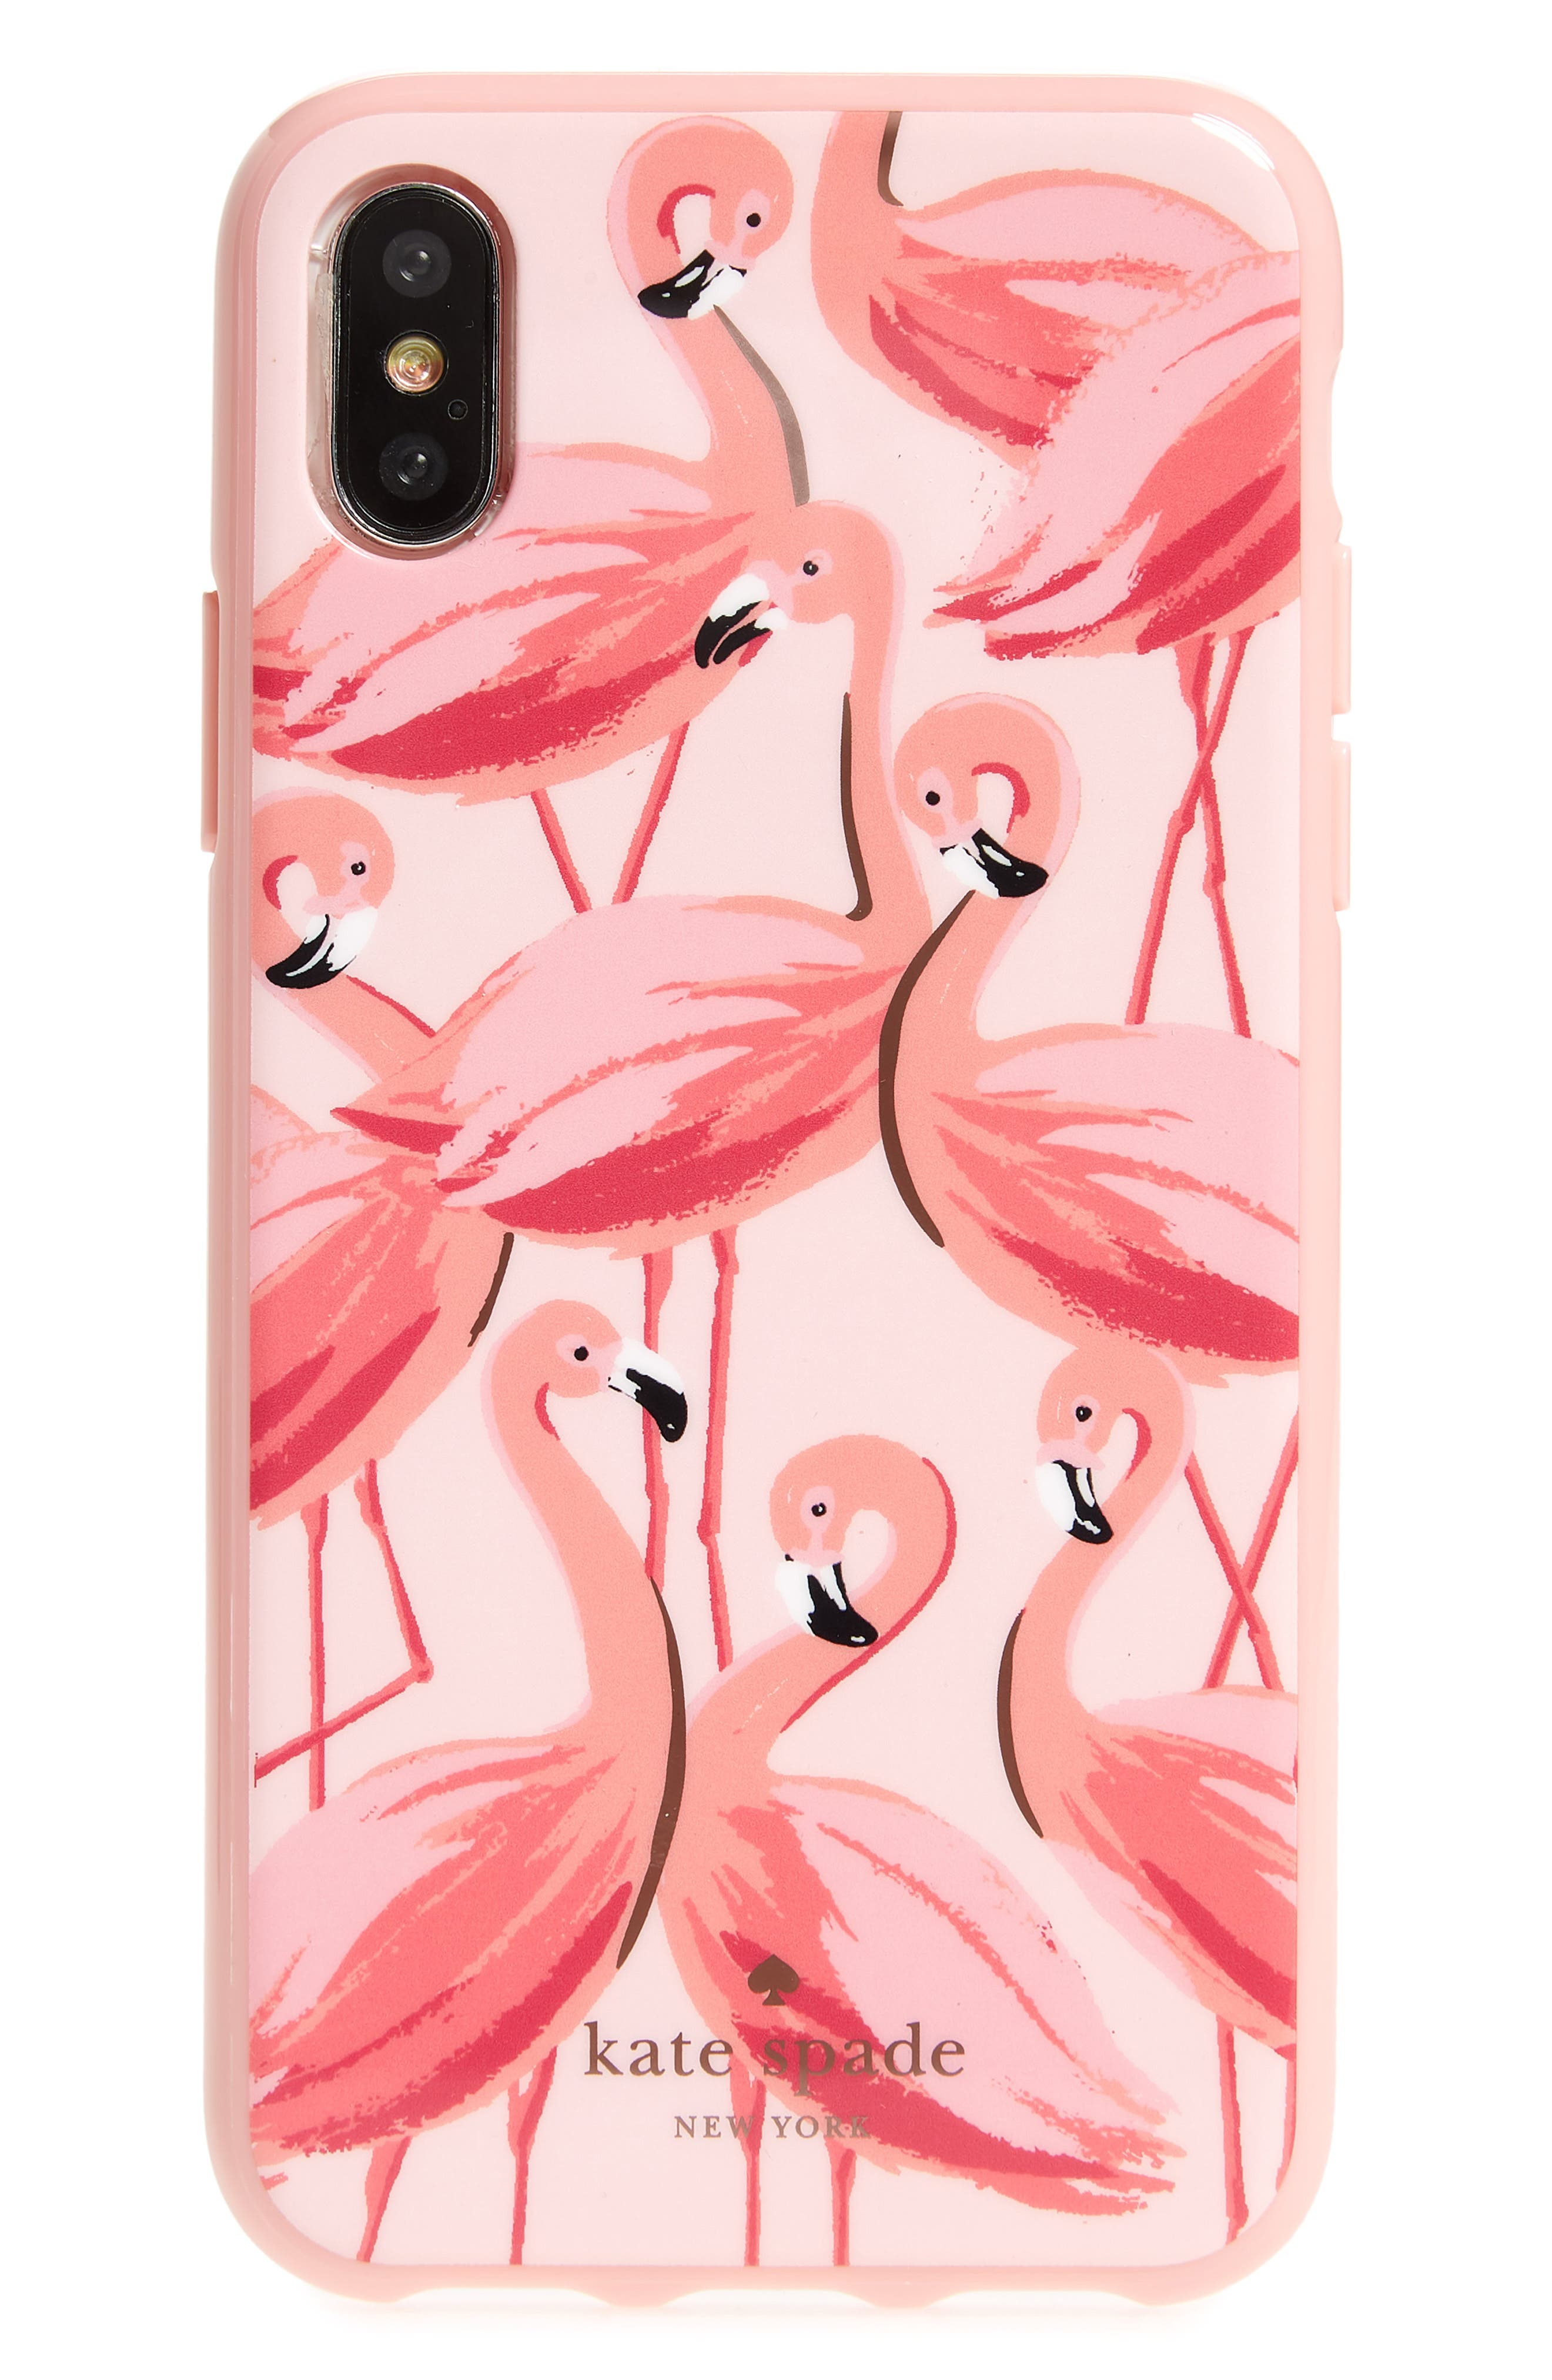 KATE SPADE NEW YORK,                             painted flamingos iPhone X/Xs case,                             Main thumbnail 1, color,                             673